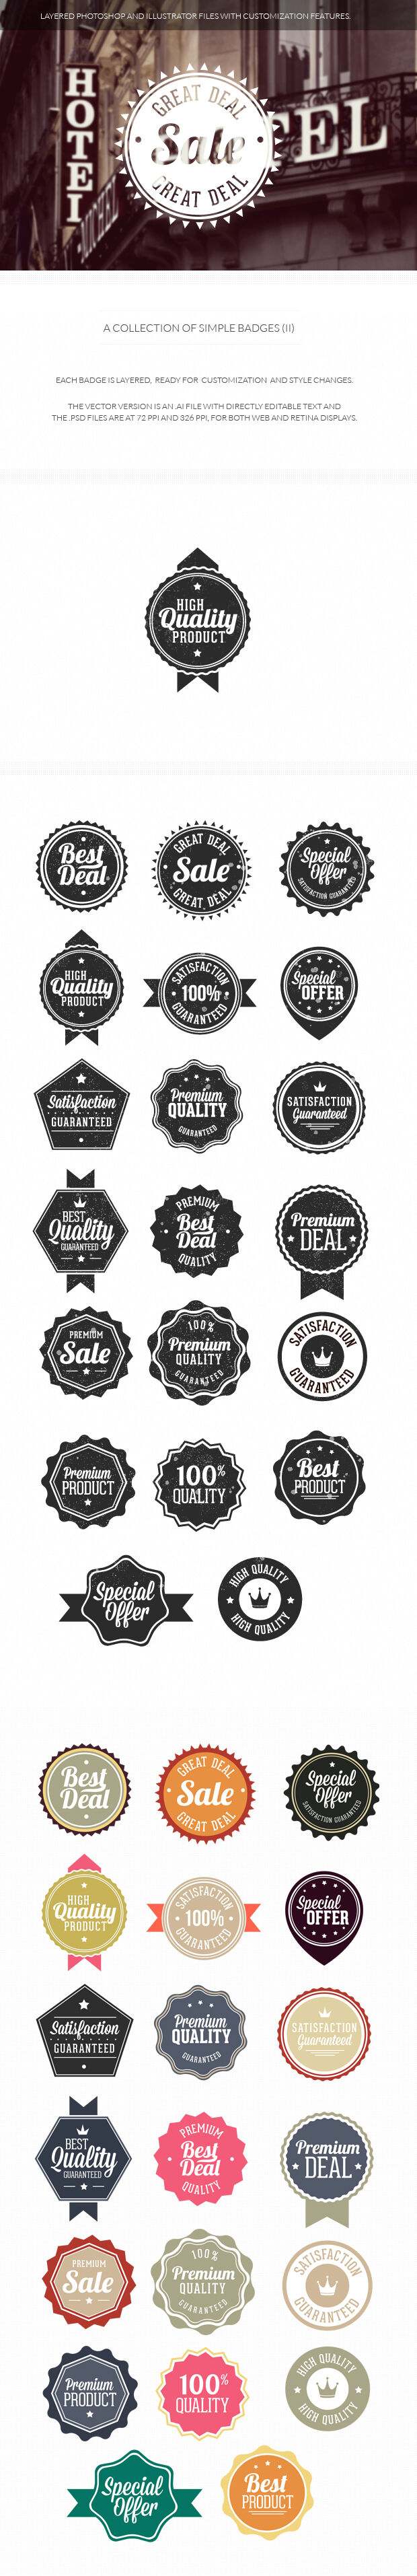 200+ Super Premium Badges 28